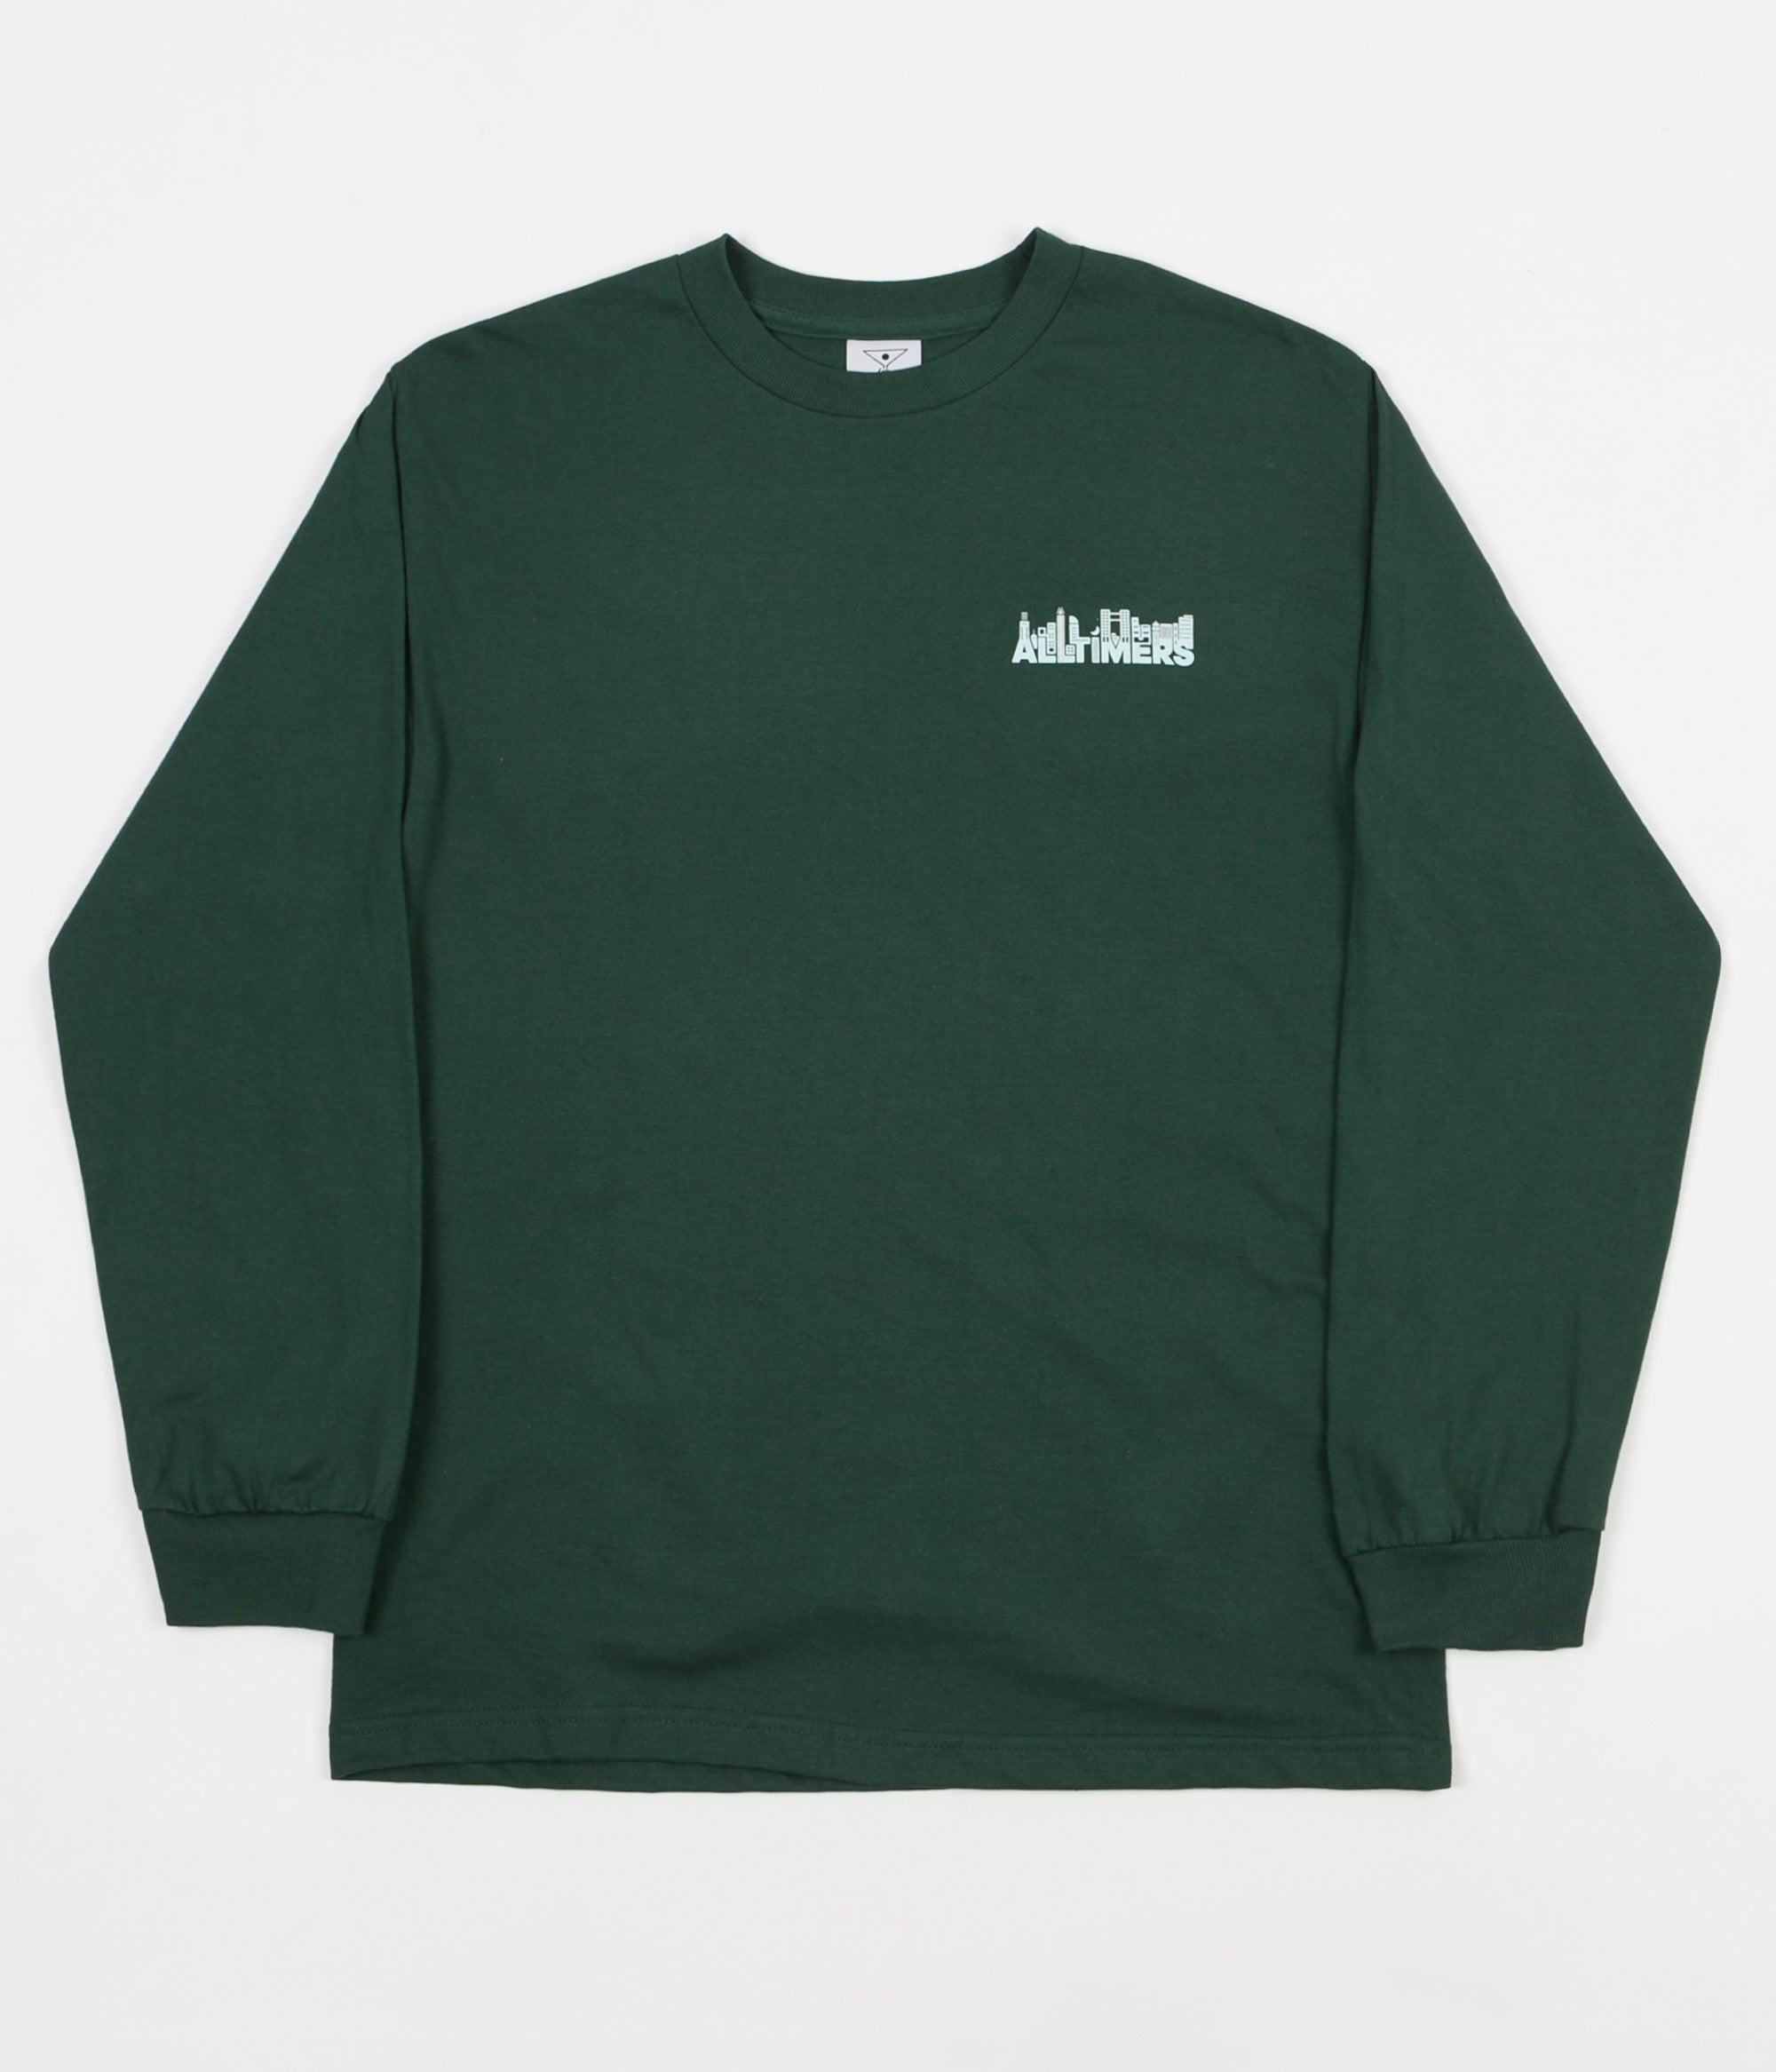 Alltimers Late Long Sleeve T-Shirt - Forest Green